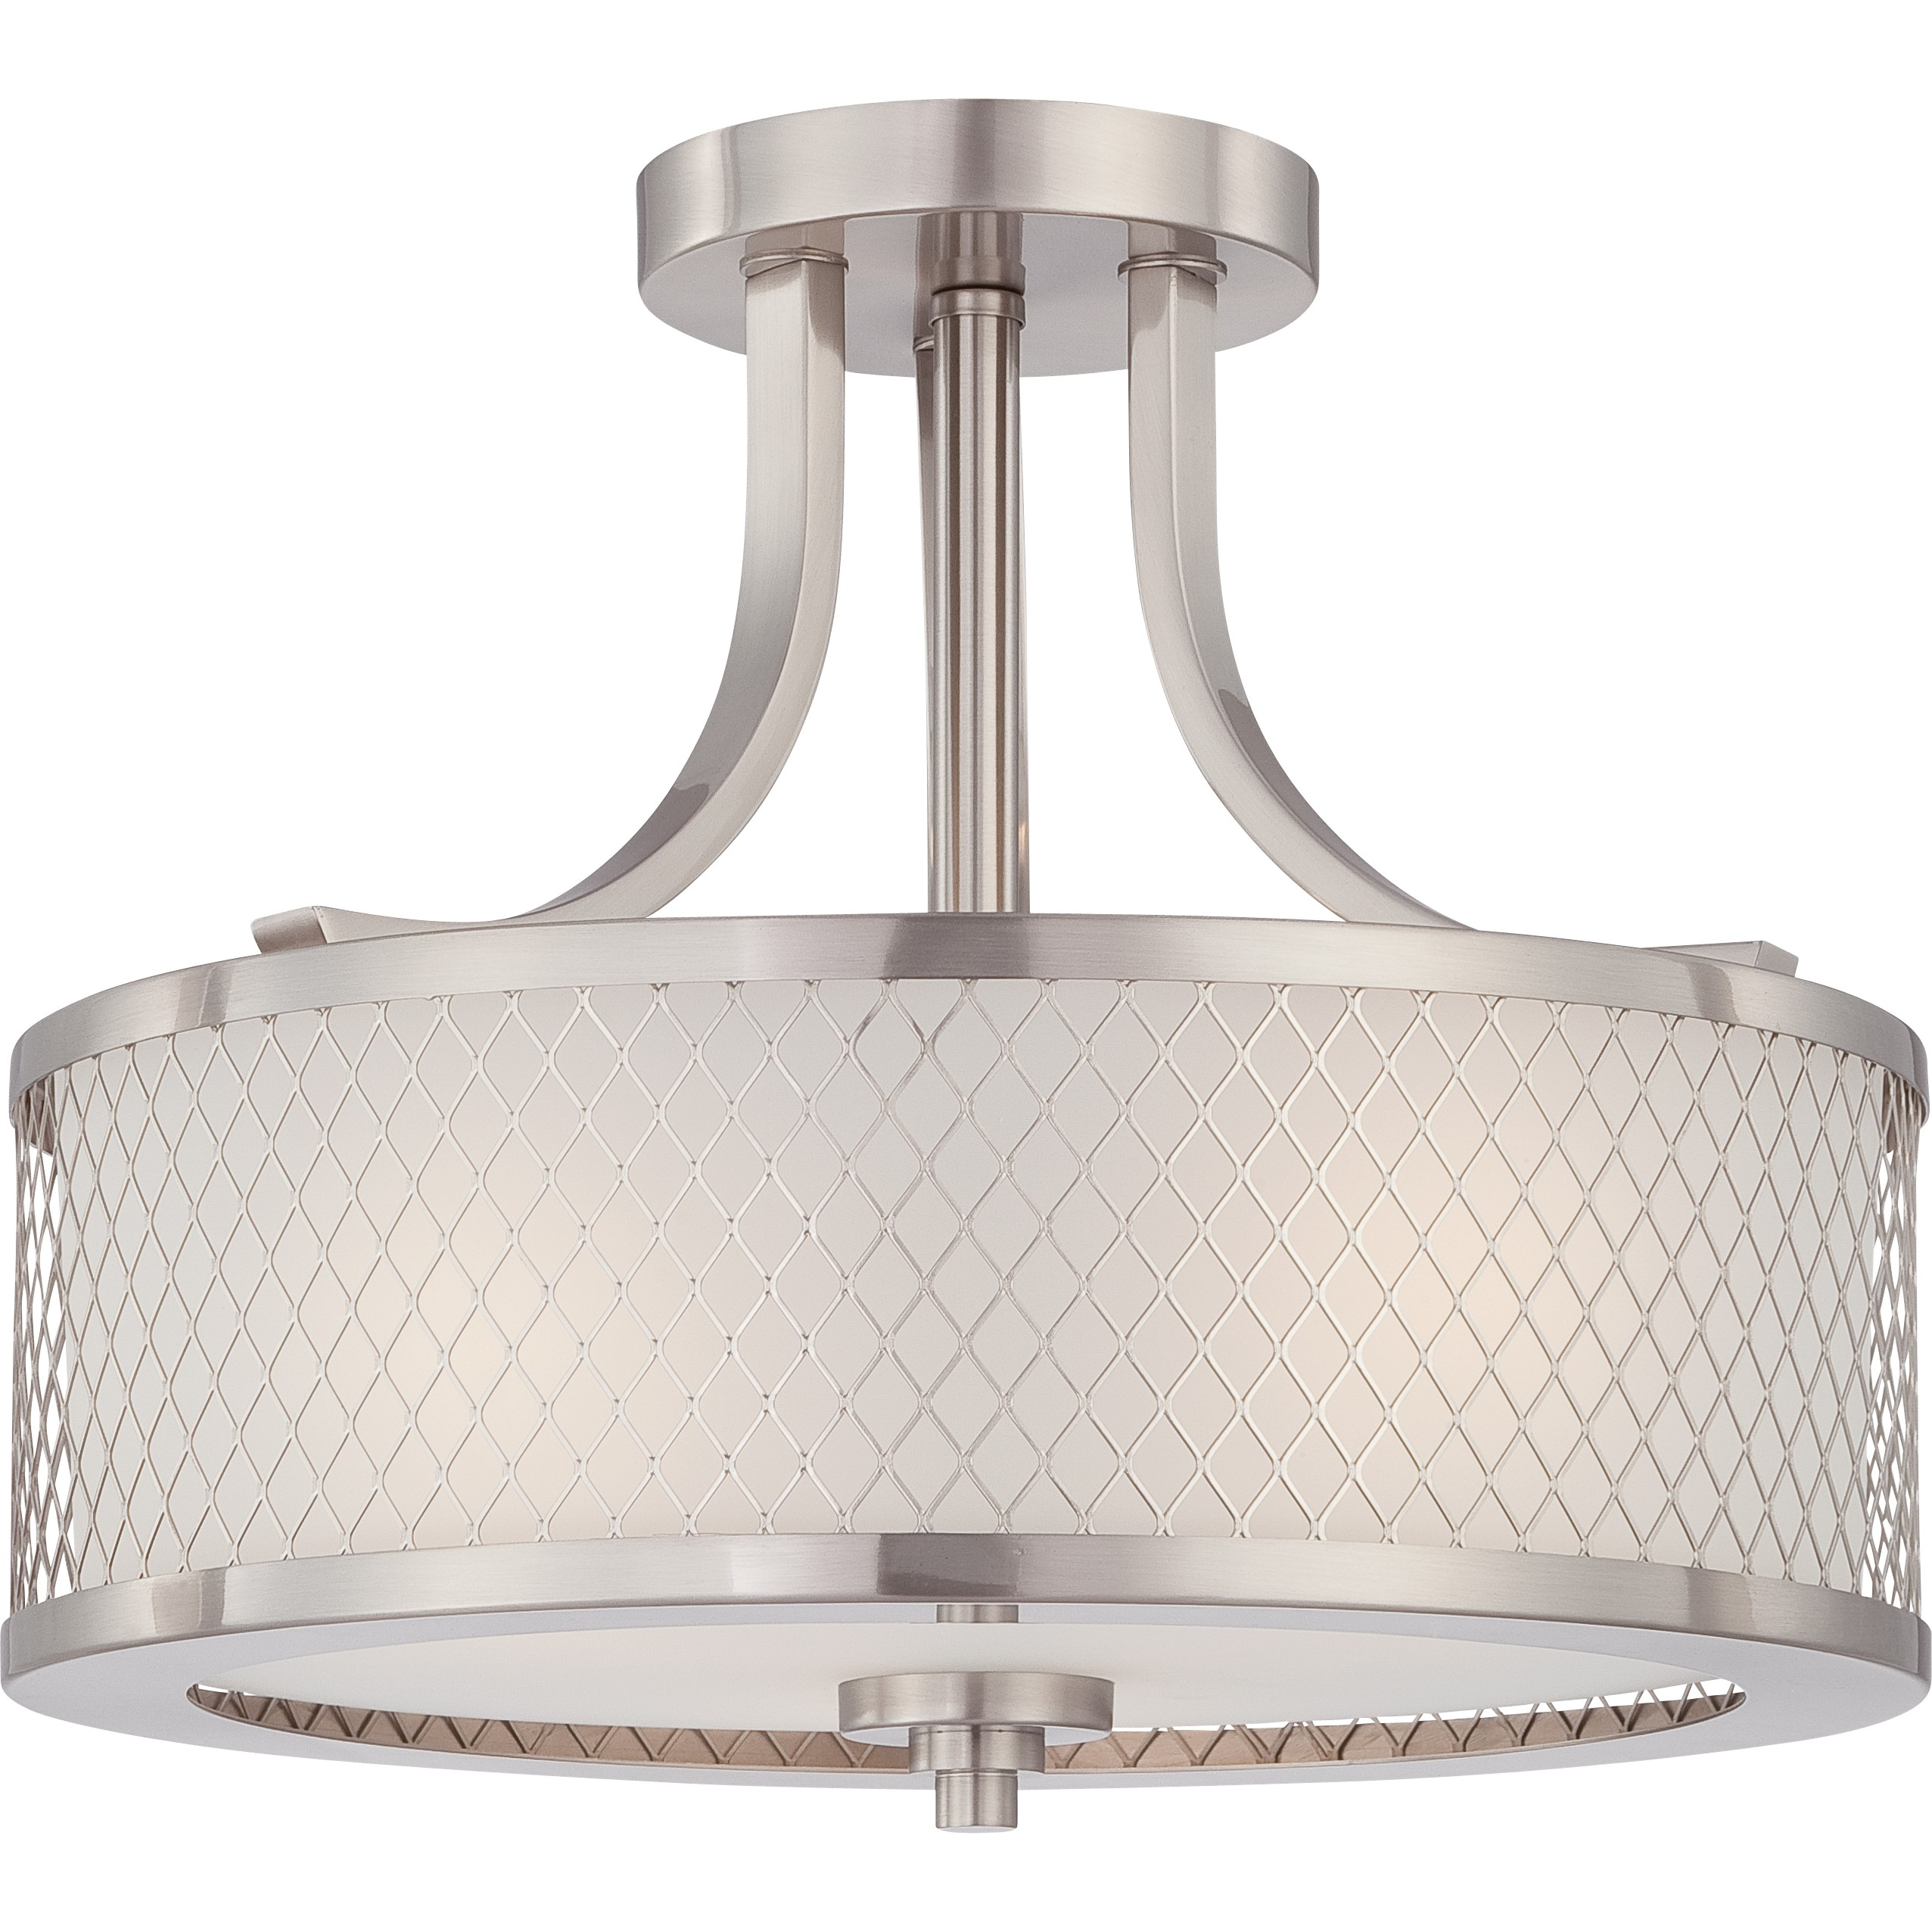 awesome nuvo lighting 3 Light Semi Flush Light Fixture for home lighting ideas